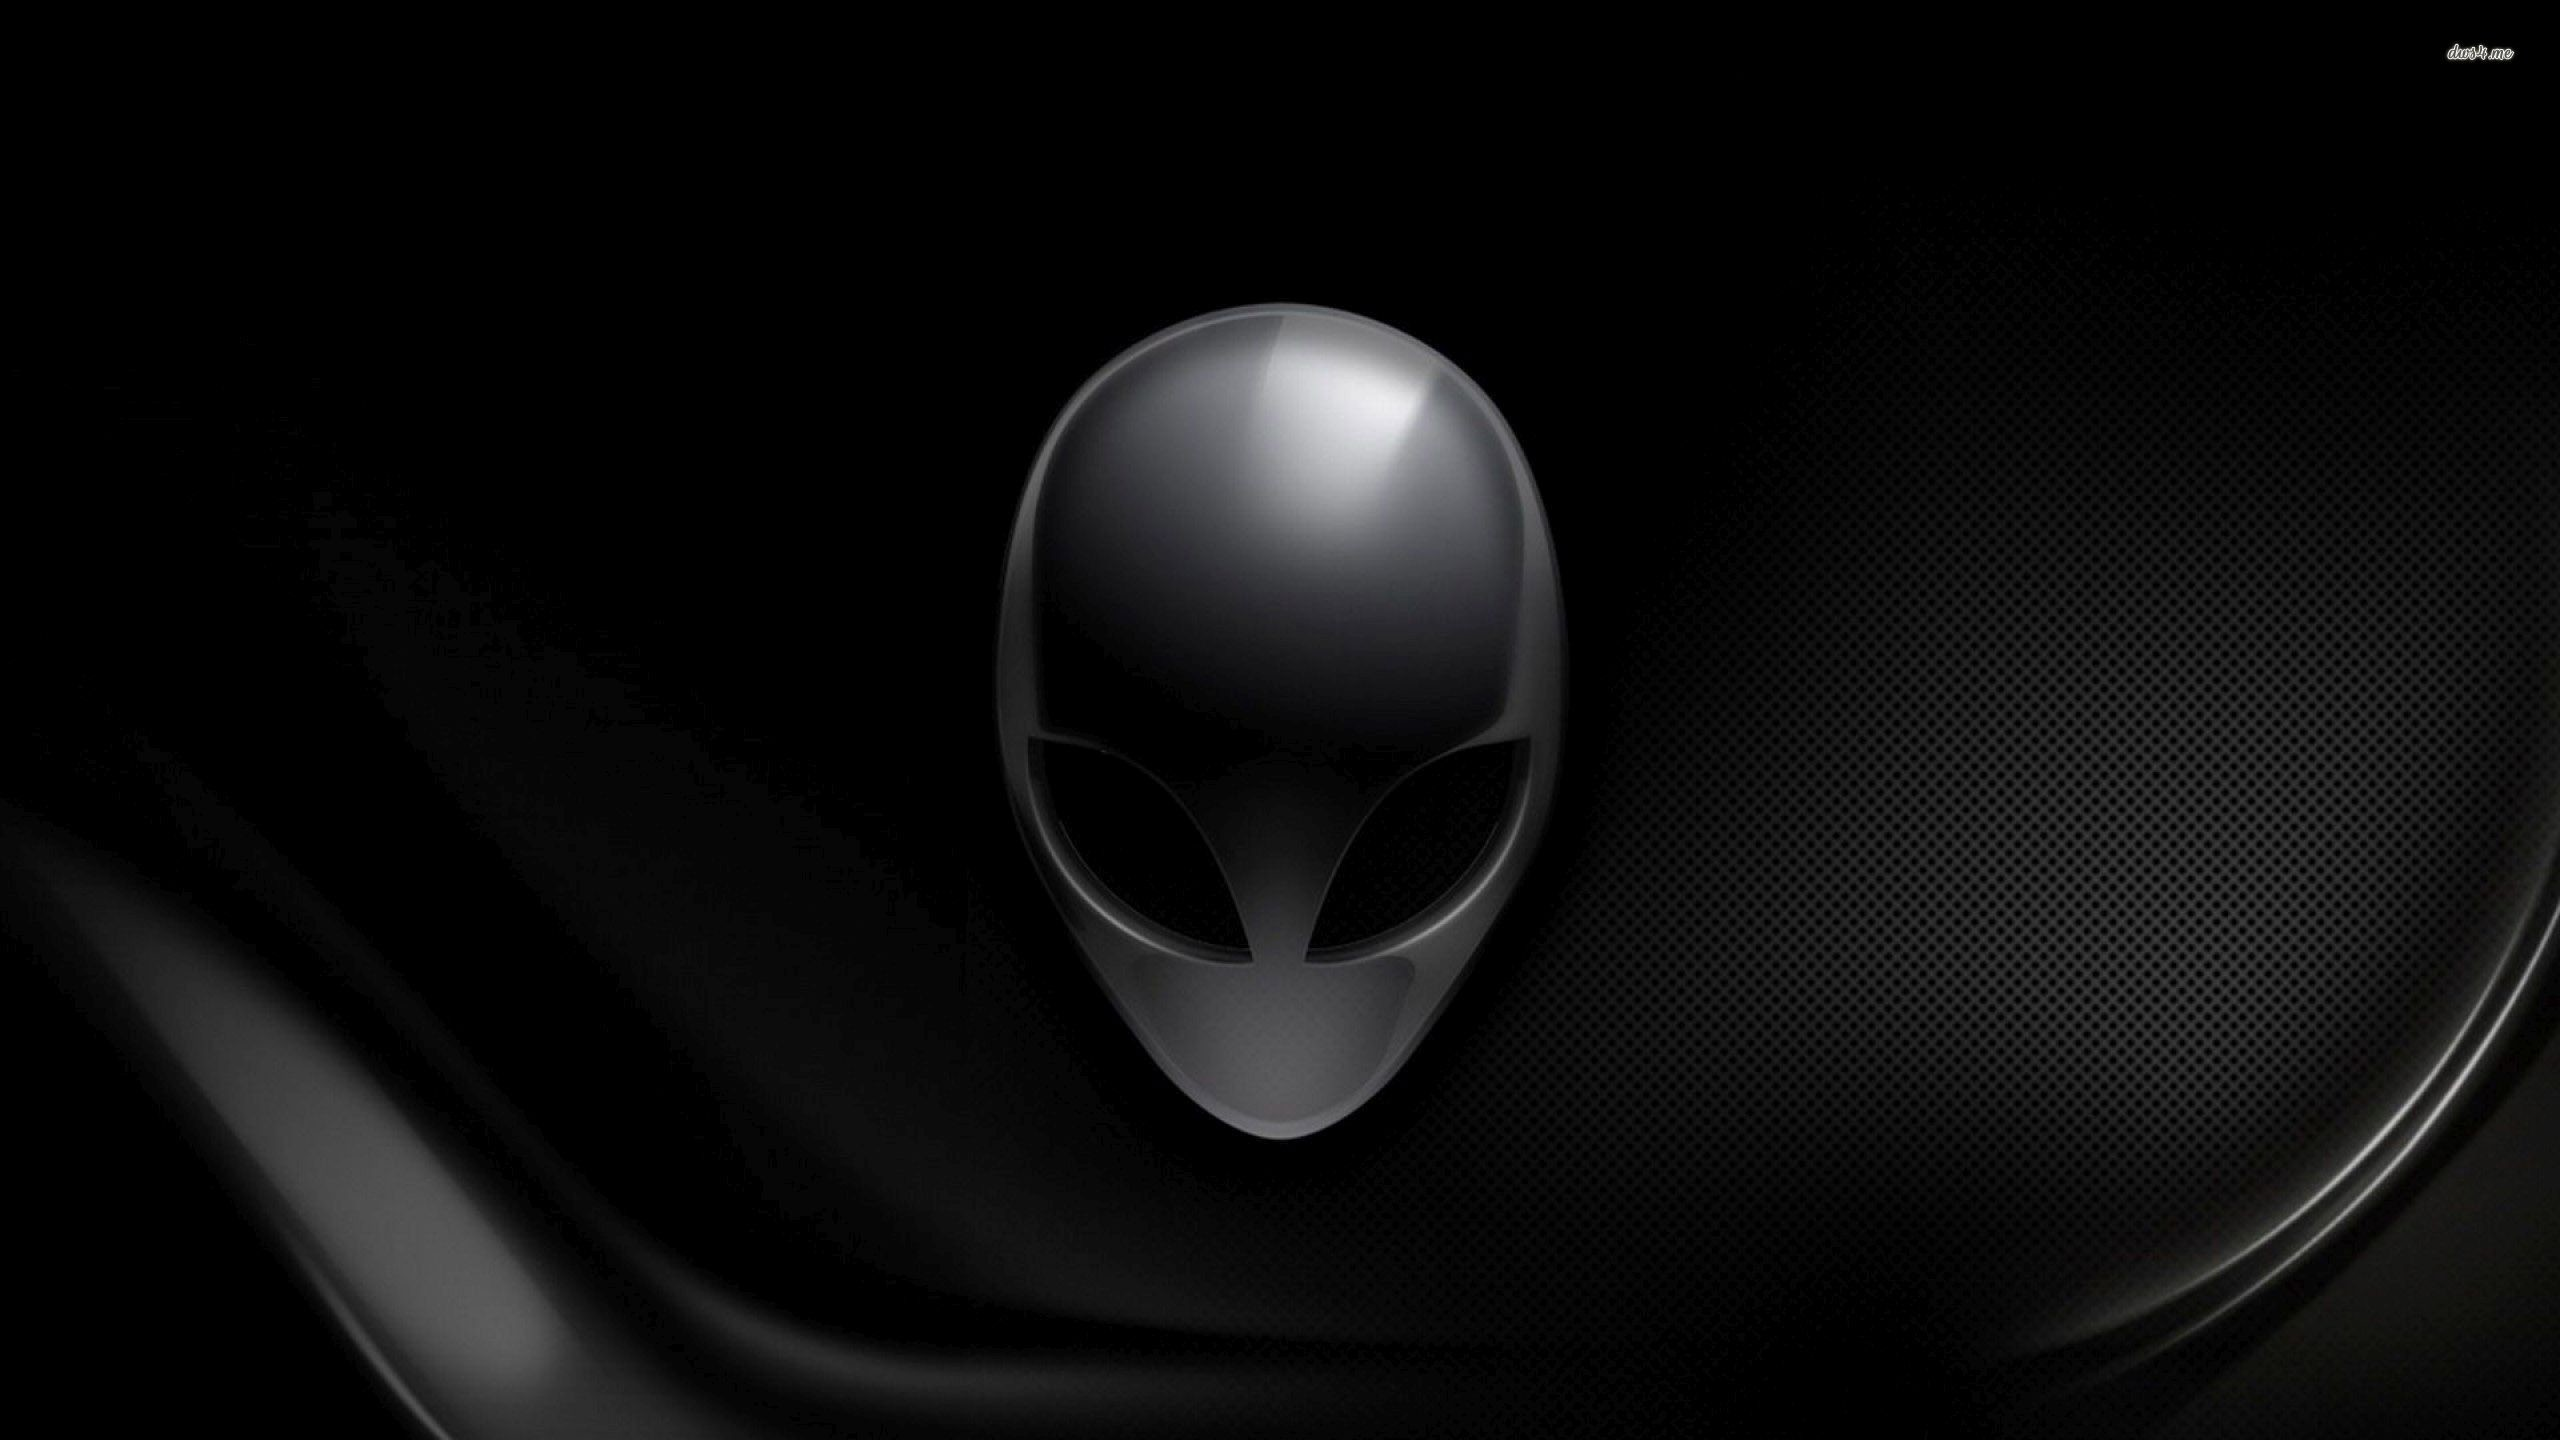 Alienware Wallpaper 2560 X 1440 71 images 2560x1440